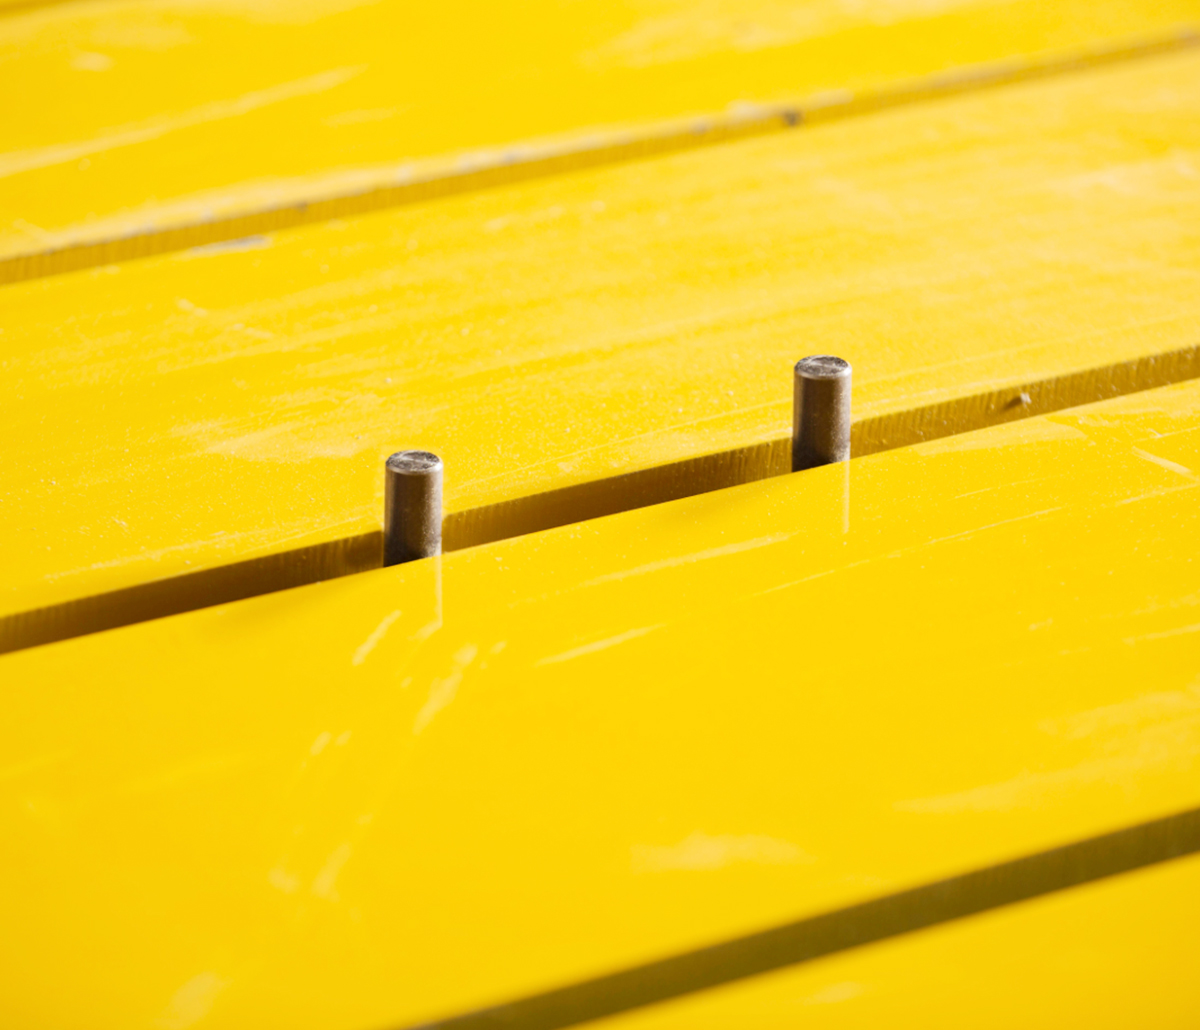 MiTek Wizard PDS Automated Solutions - Two metal pegs sticking up between two yellow boards